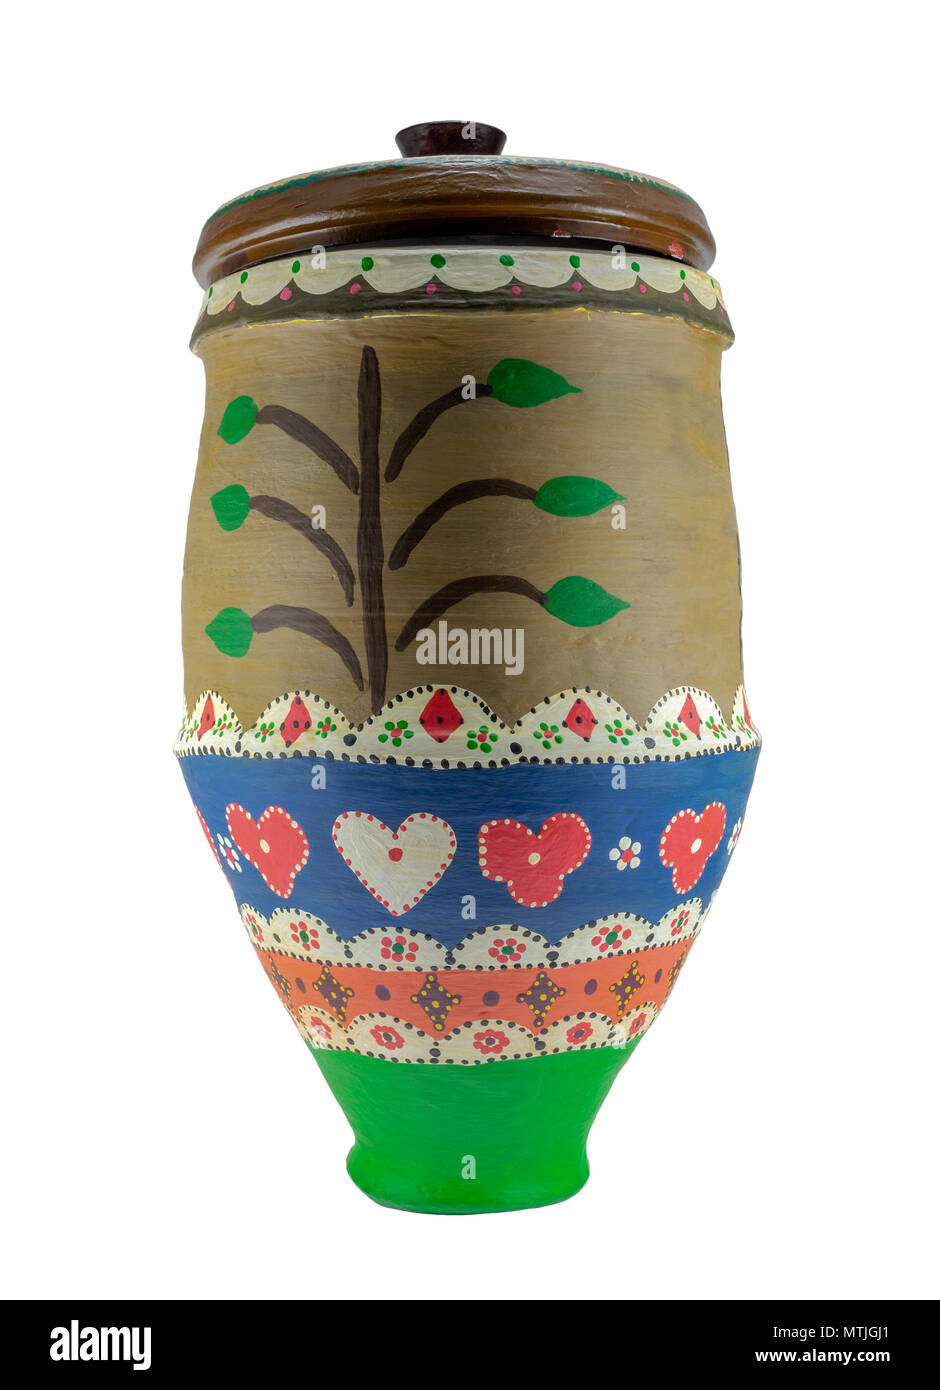 Colorful Egyptian handcrafted decorated artistic pottery jar isolated on white - Stock Image